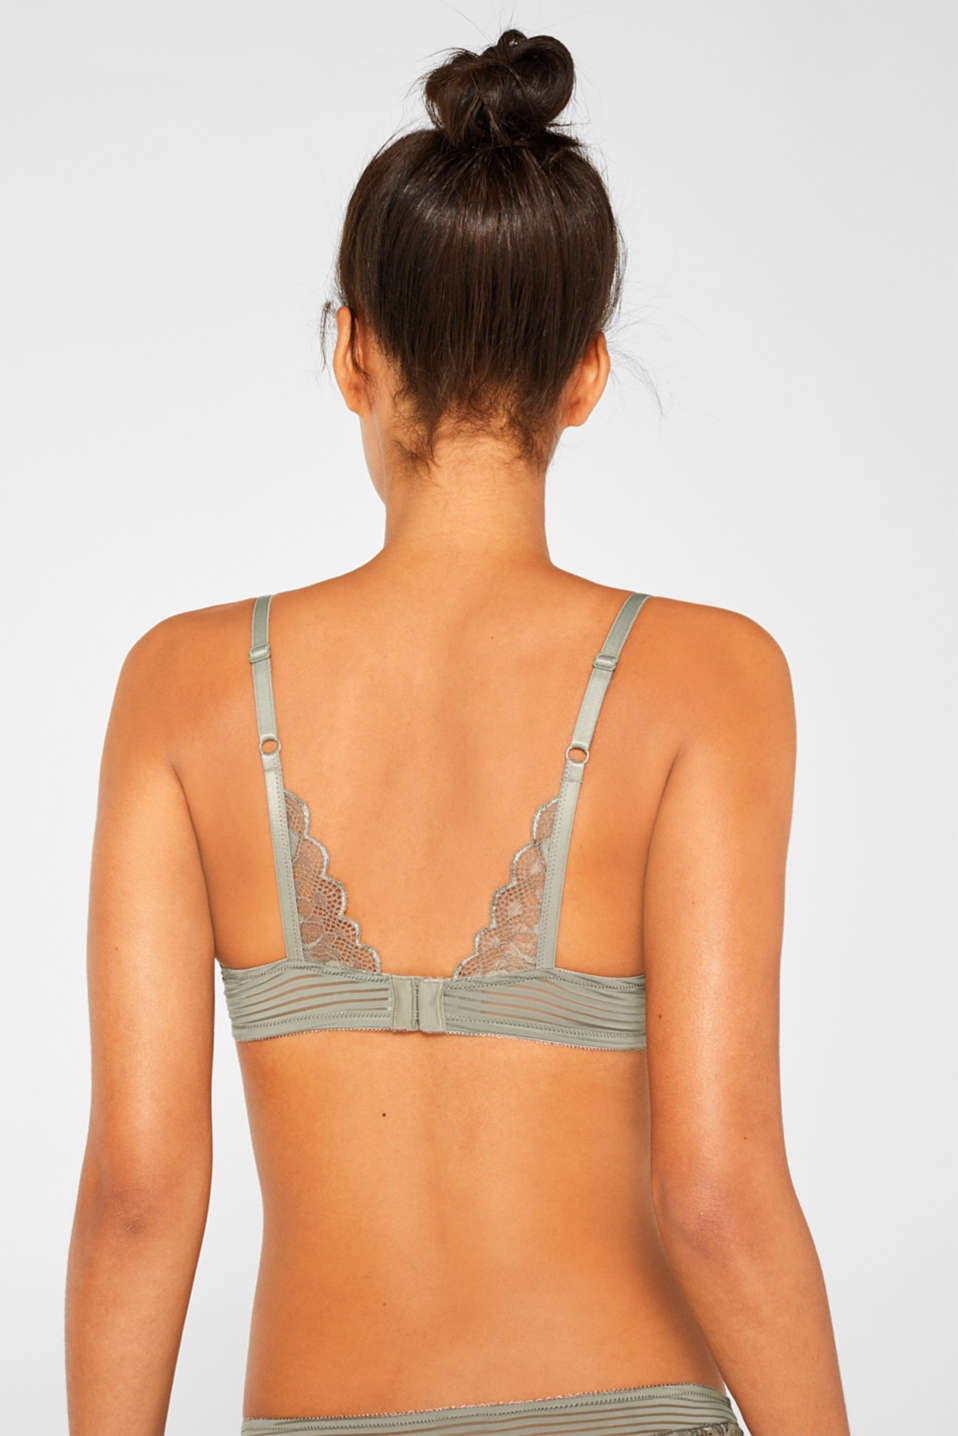 Padded underwire bra with stripes and lace, OLIVE, detail image number 1